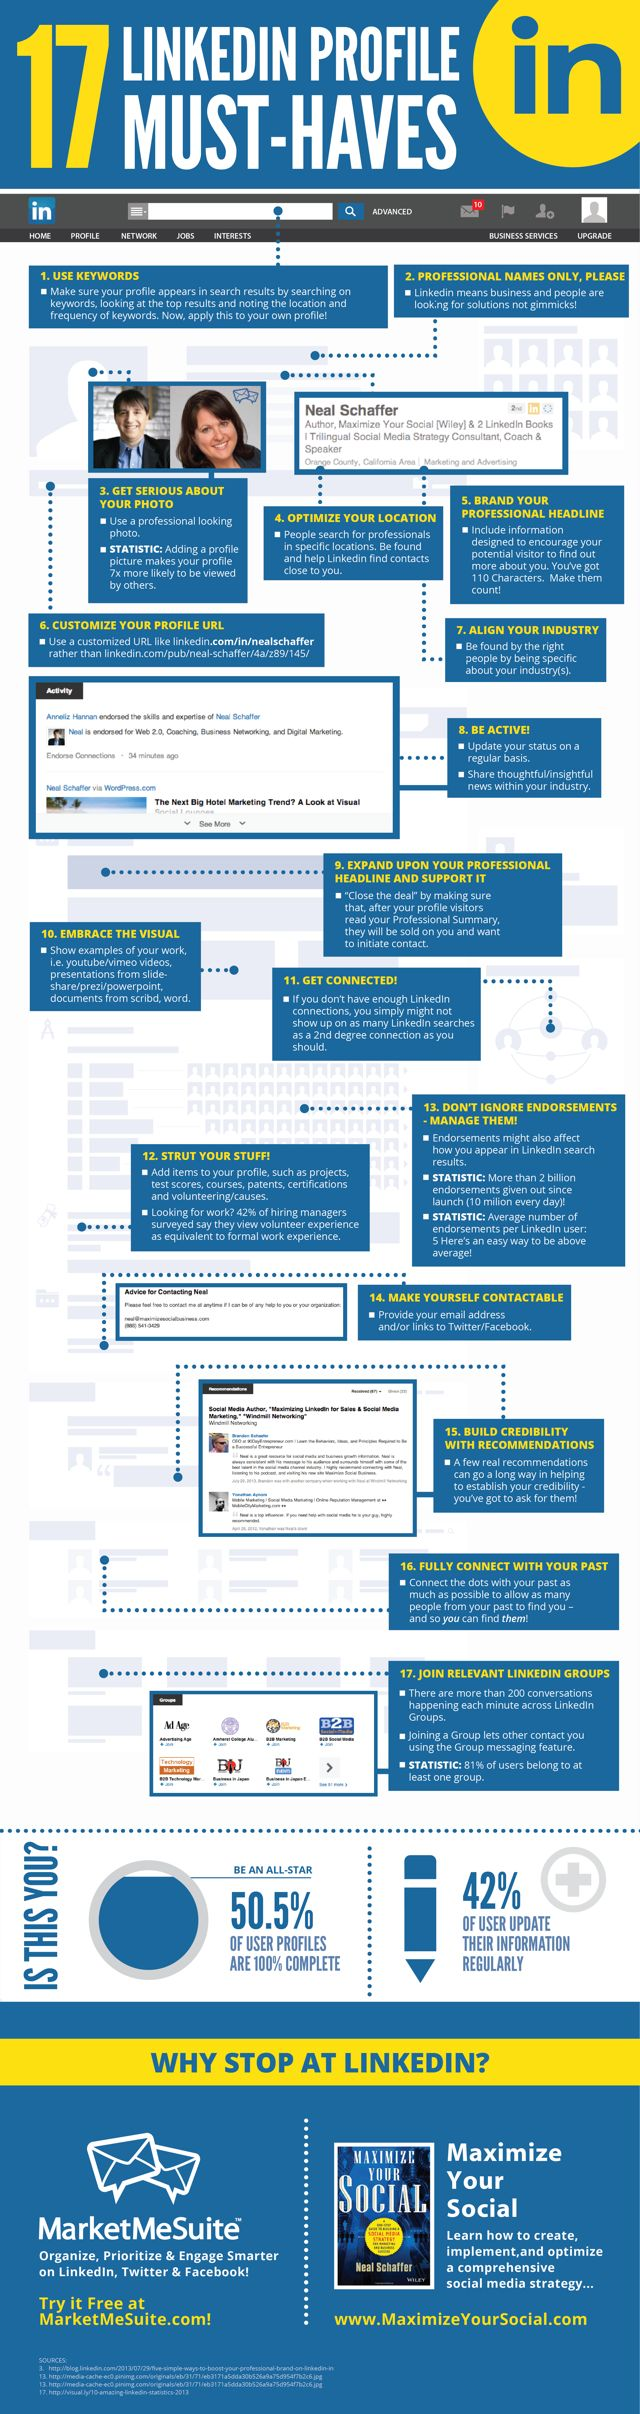 LinkedIn 17 must-haves infographic